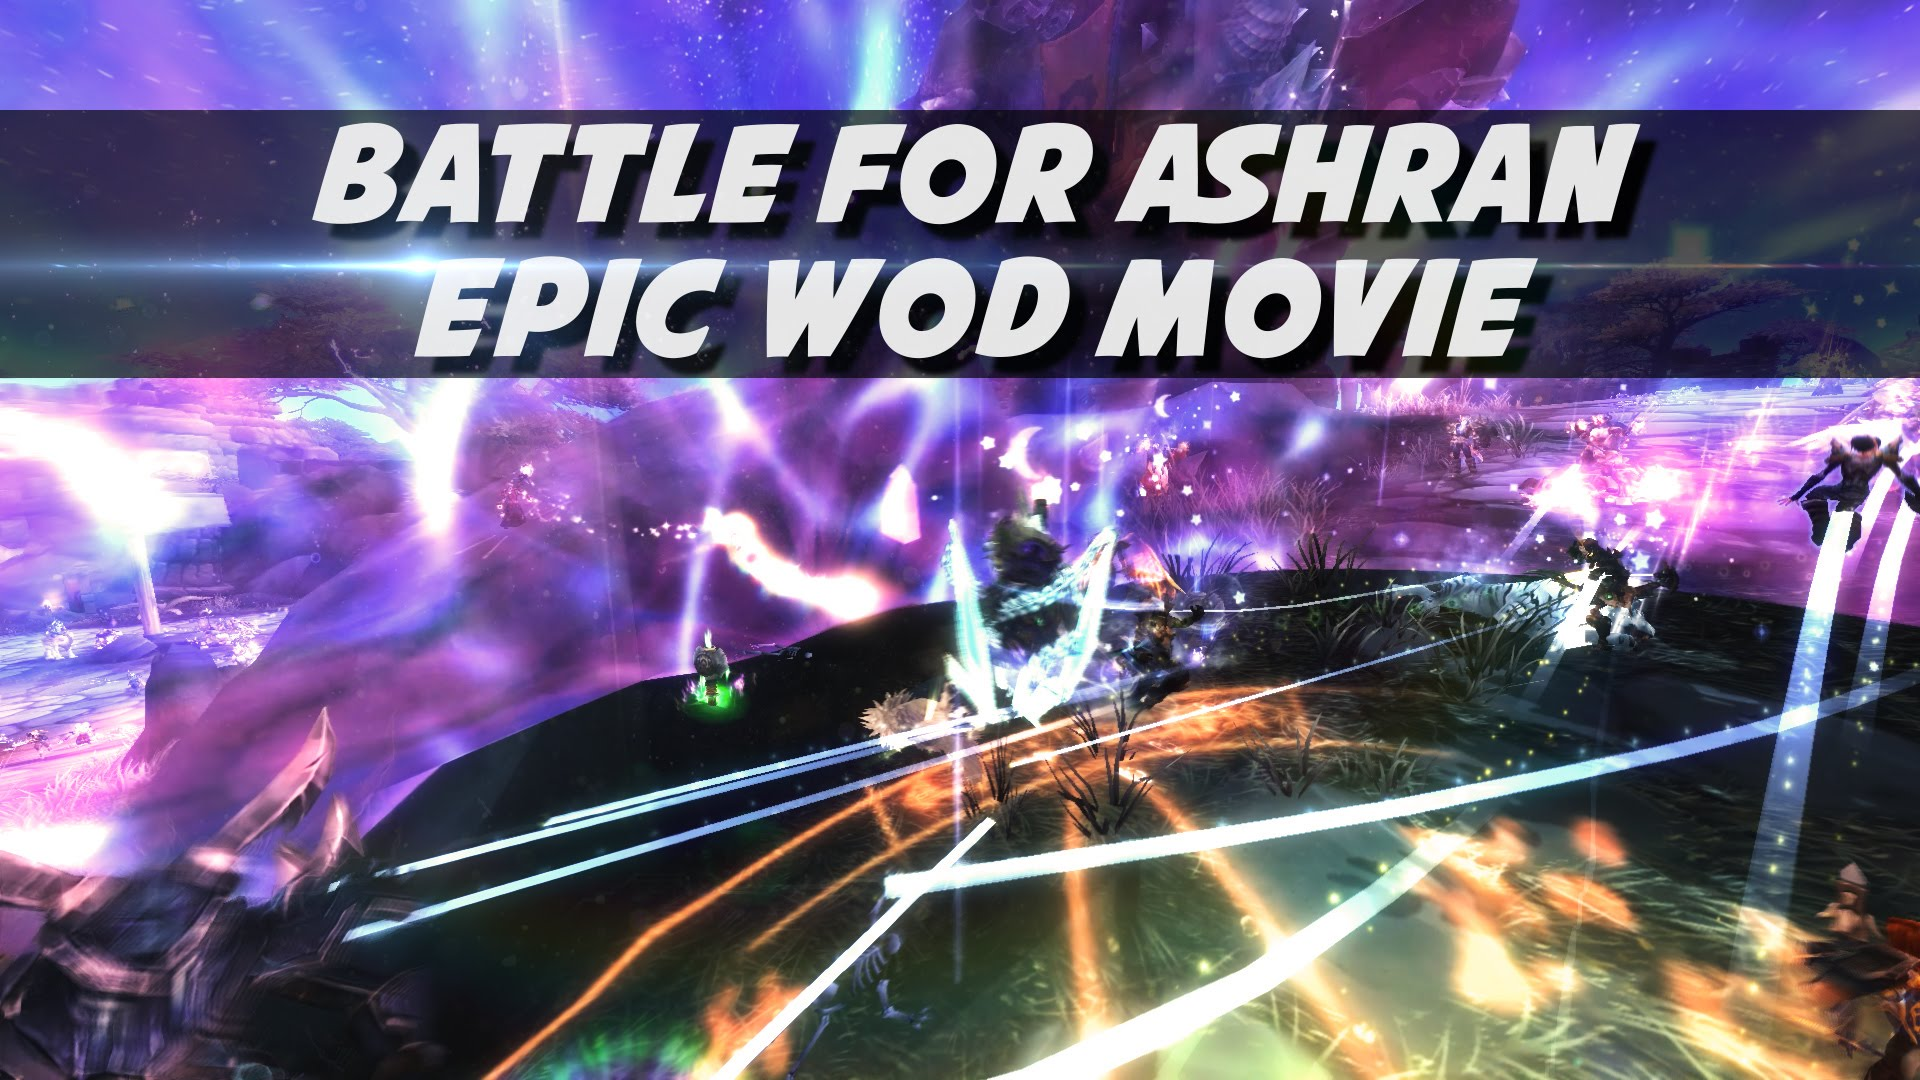 Battle for Ashran: Epic WoD Cinematic Footage by Psynaps